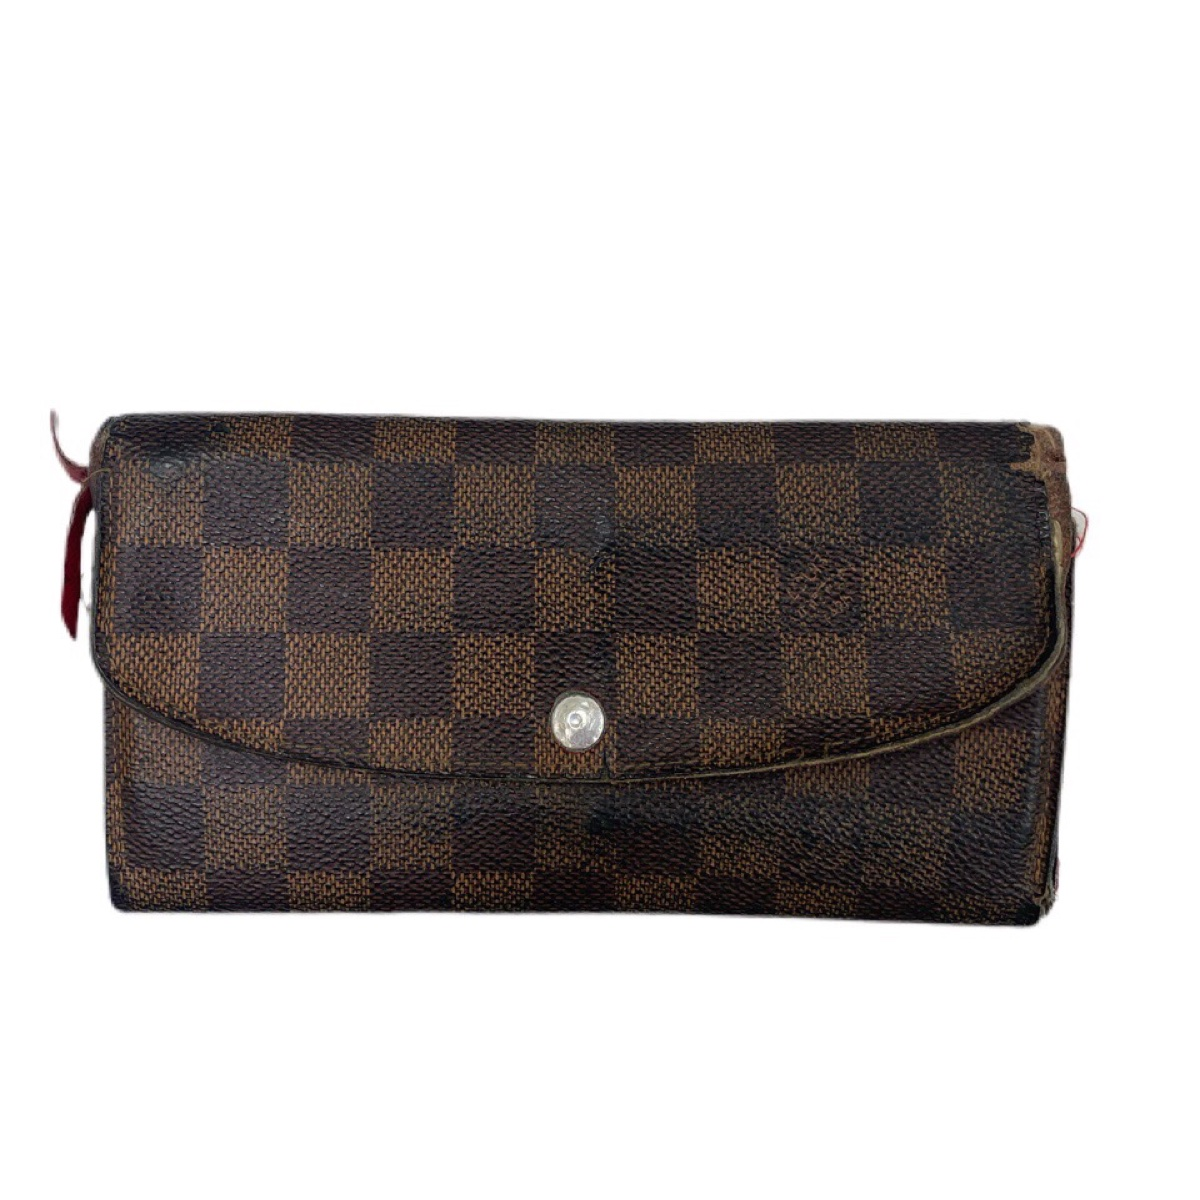 Louis Vuitton vintage damier purse